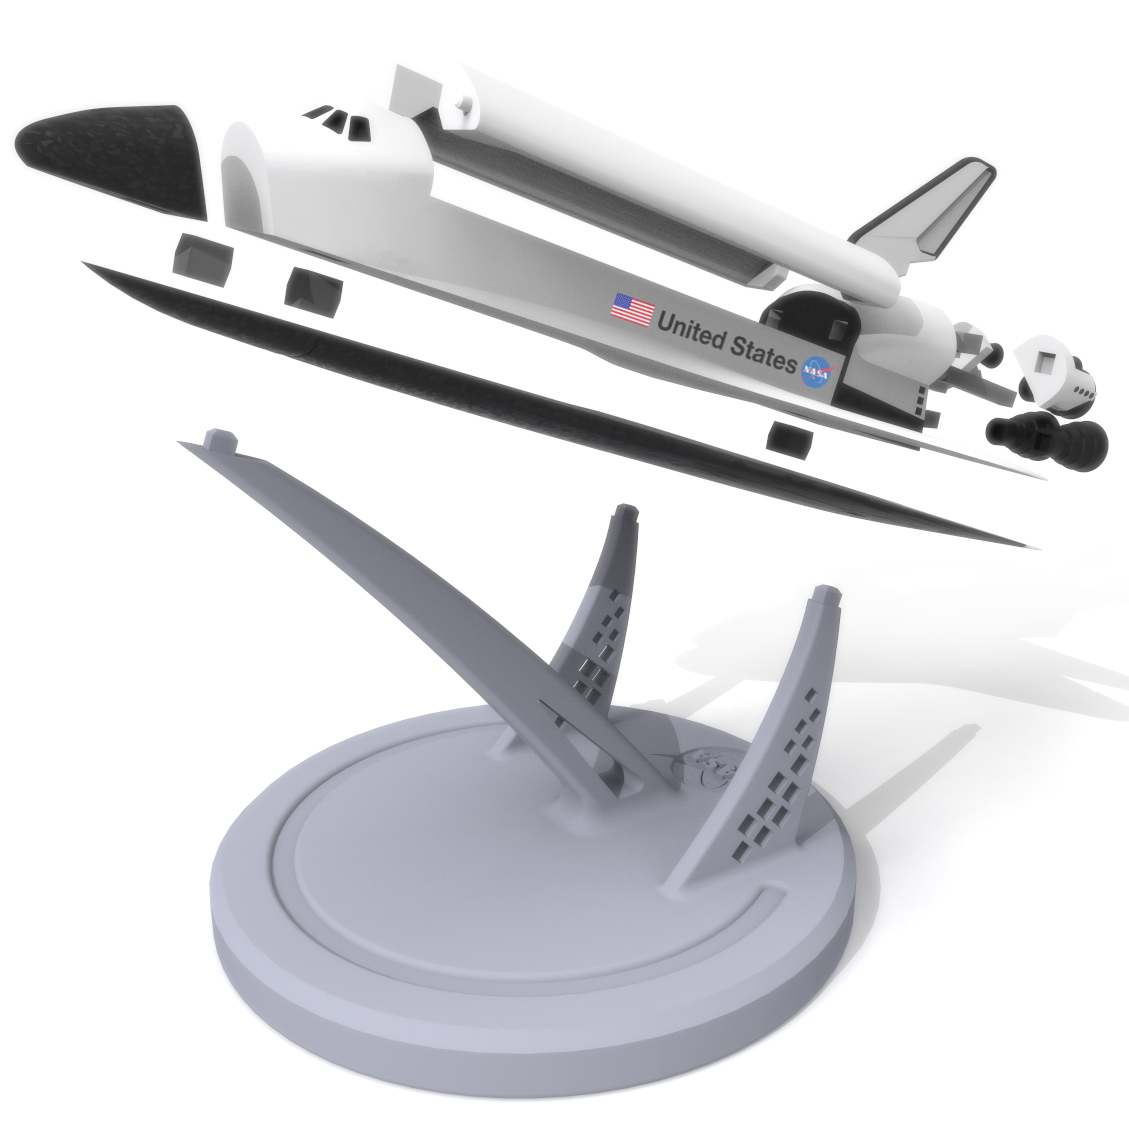 Space Shuttle Atlantis Exploded, 3D Printer Models